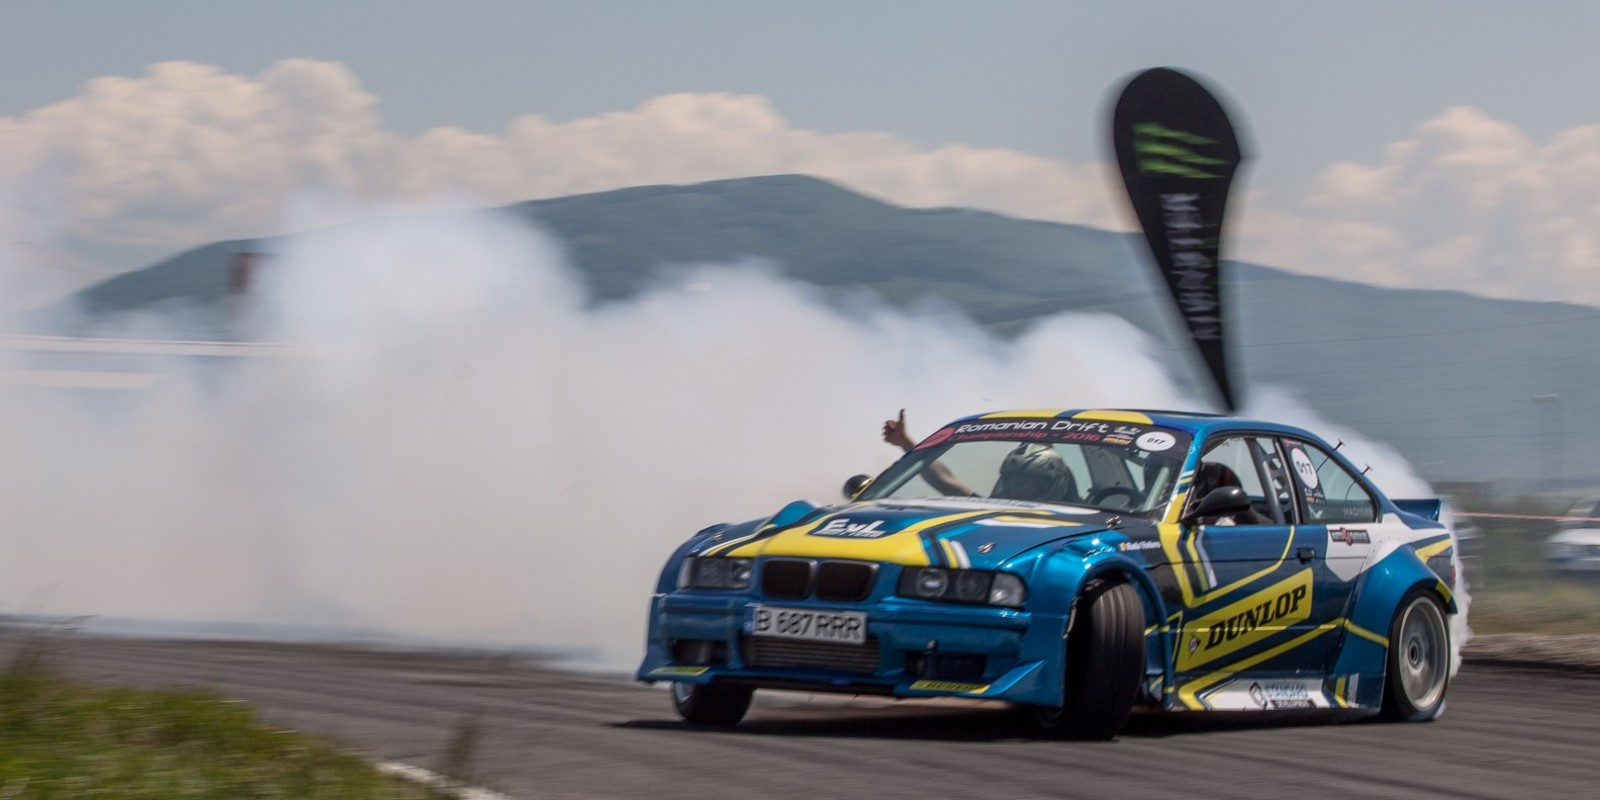 Event shots from the 1st Stage of the Romanian Drift Championship - no local athletes involved - we sponsored the event - branding on site